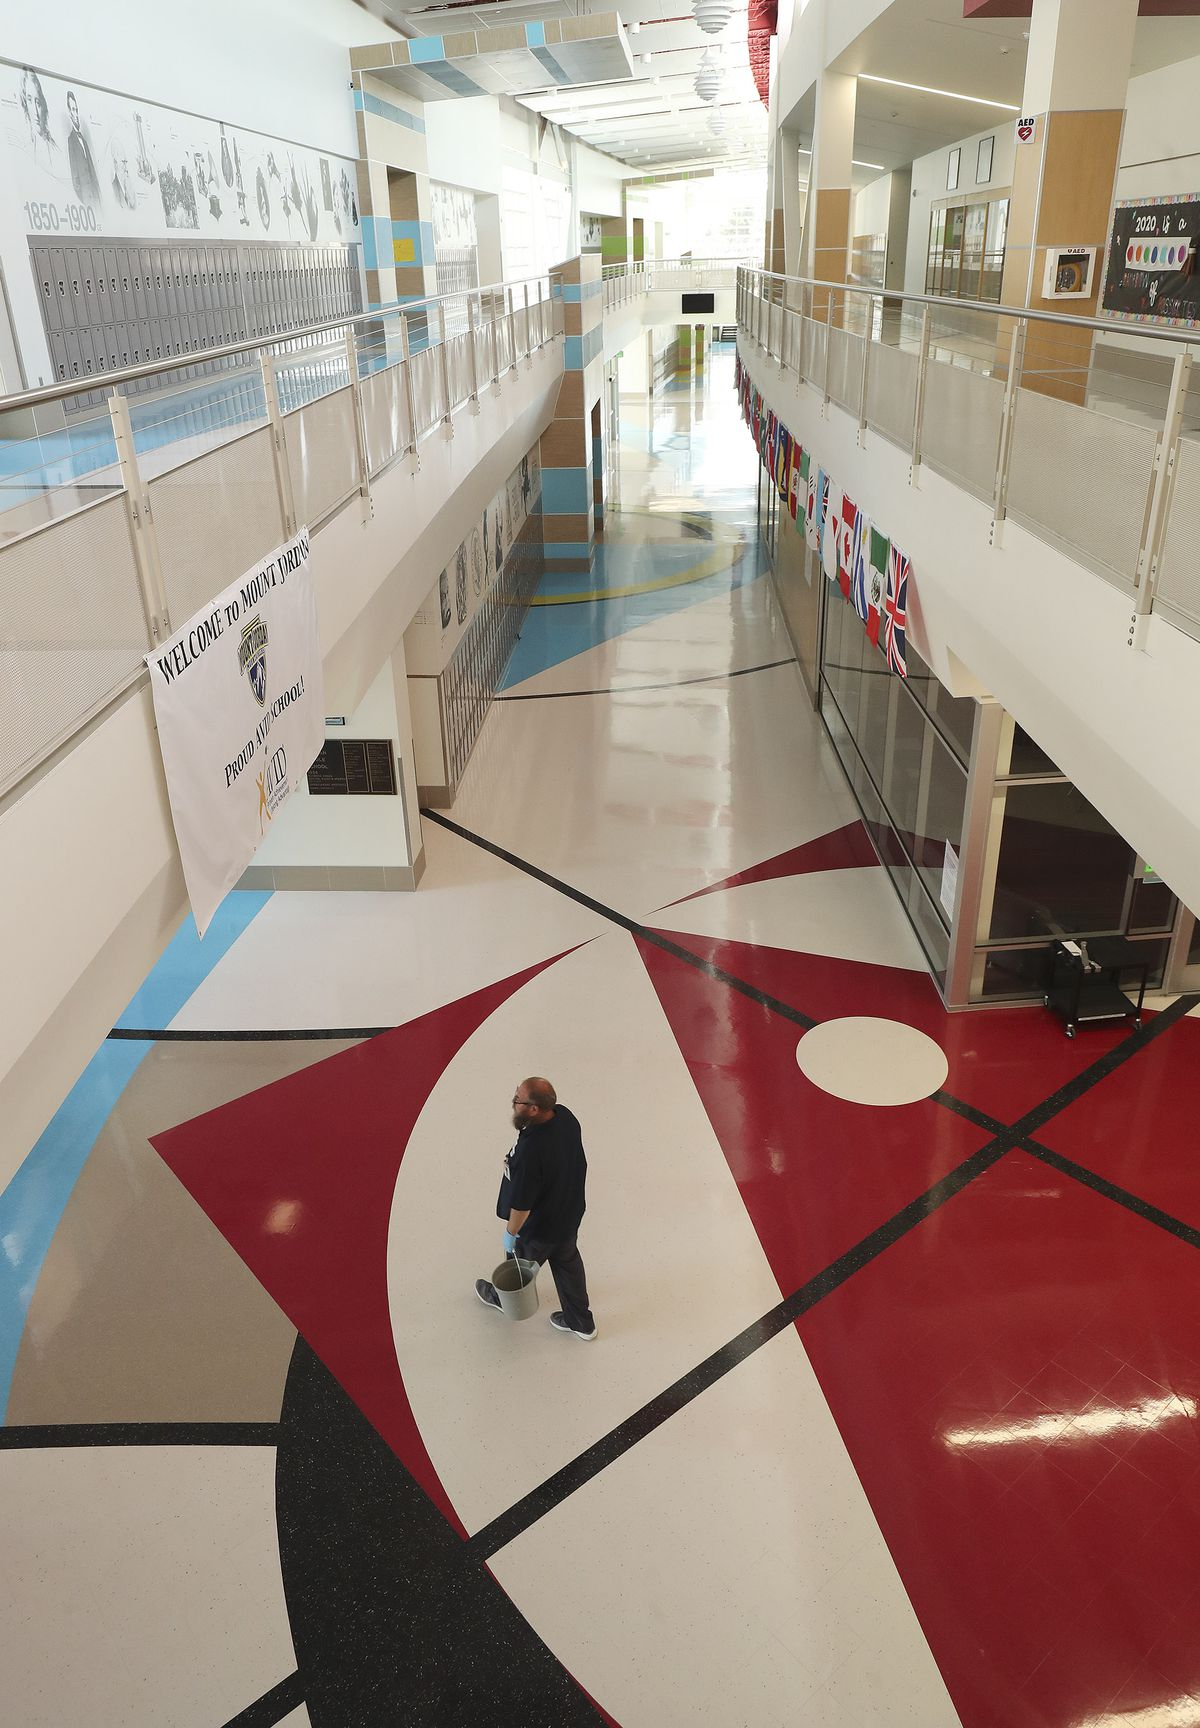 Jessee Osborne, lead custodian at Mount Jordan Middle School in Sandy, walks through the school's empty hallson Tuesday, April 14, 2020. Utah's K-12 public schools will remain closed for in-person learning for the remainder of the academic year, state officials announced Tuesday.